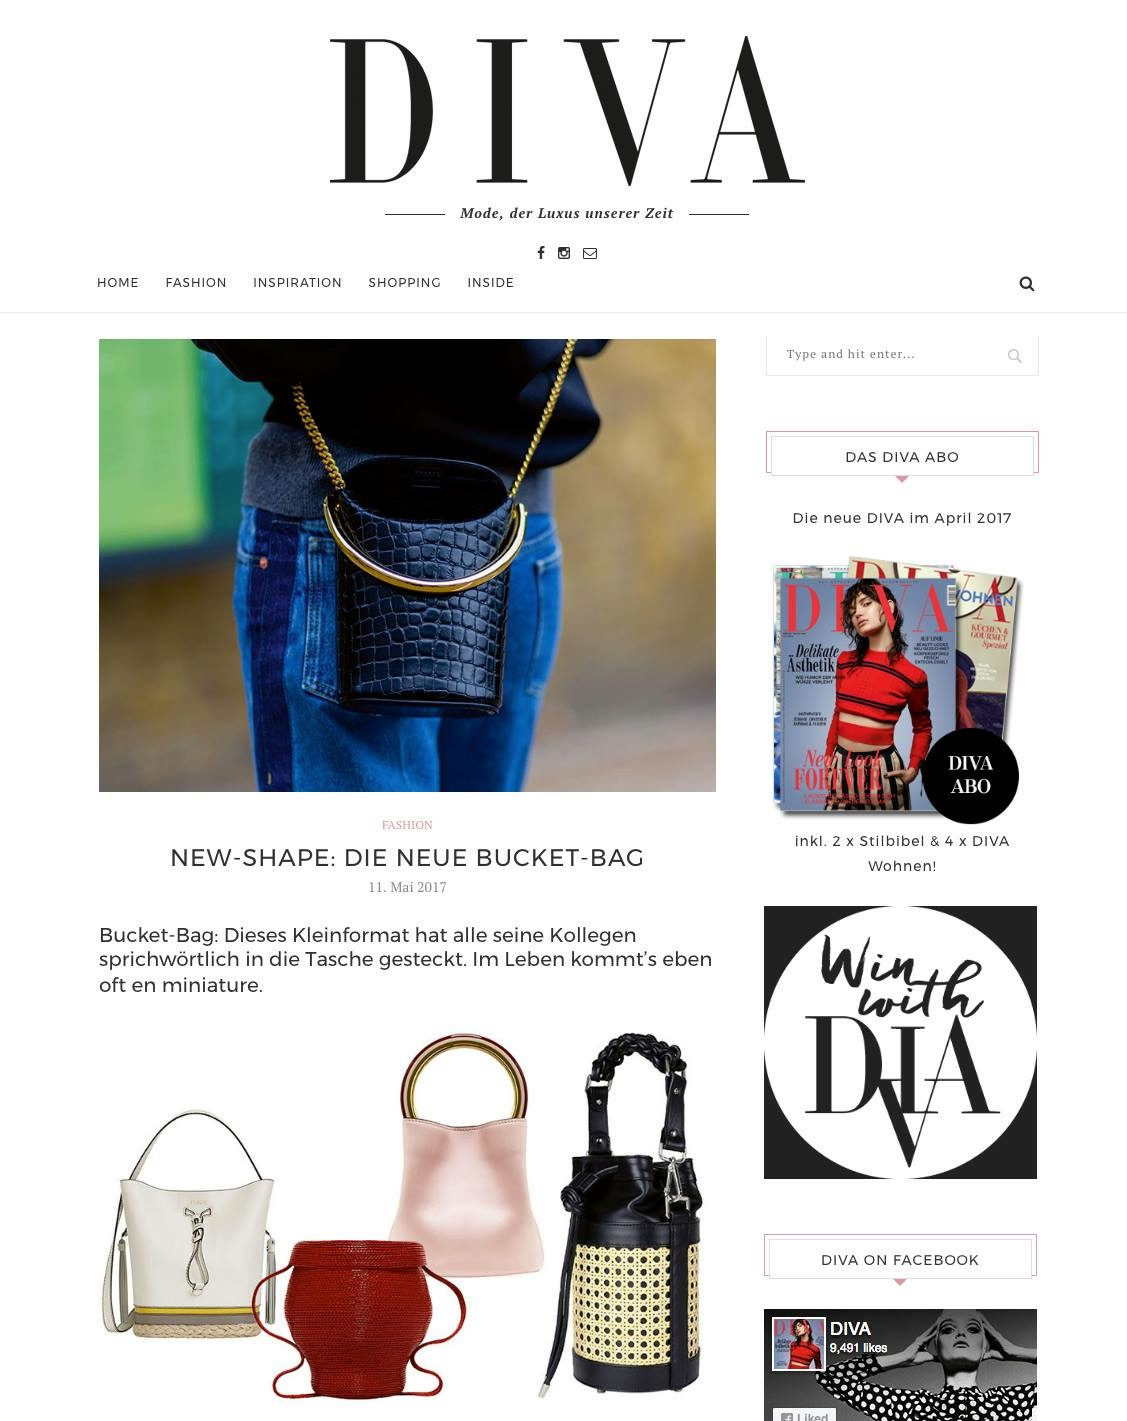 DIVA Magazine recommends:#SAGAN VIENNA bucket bag